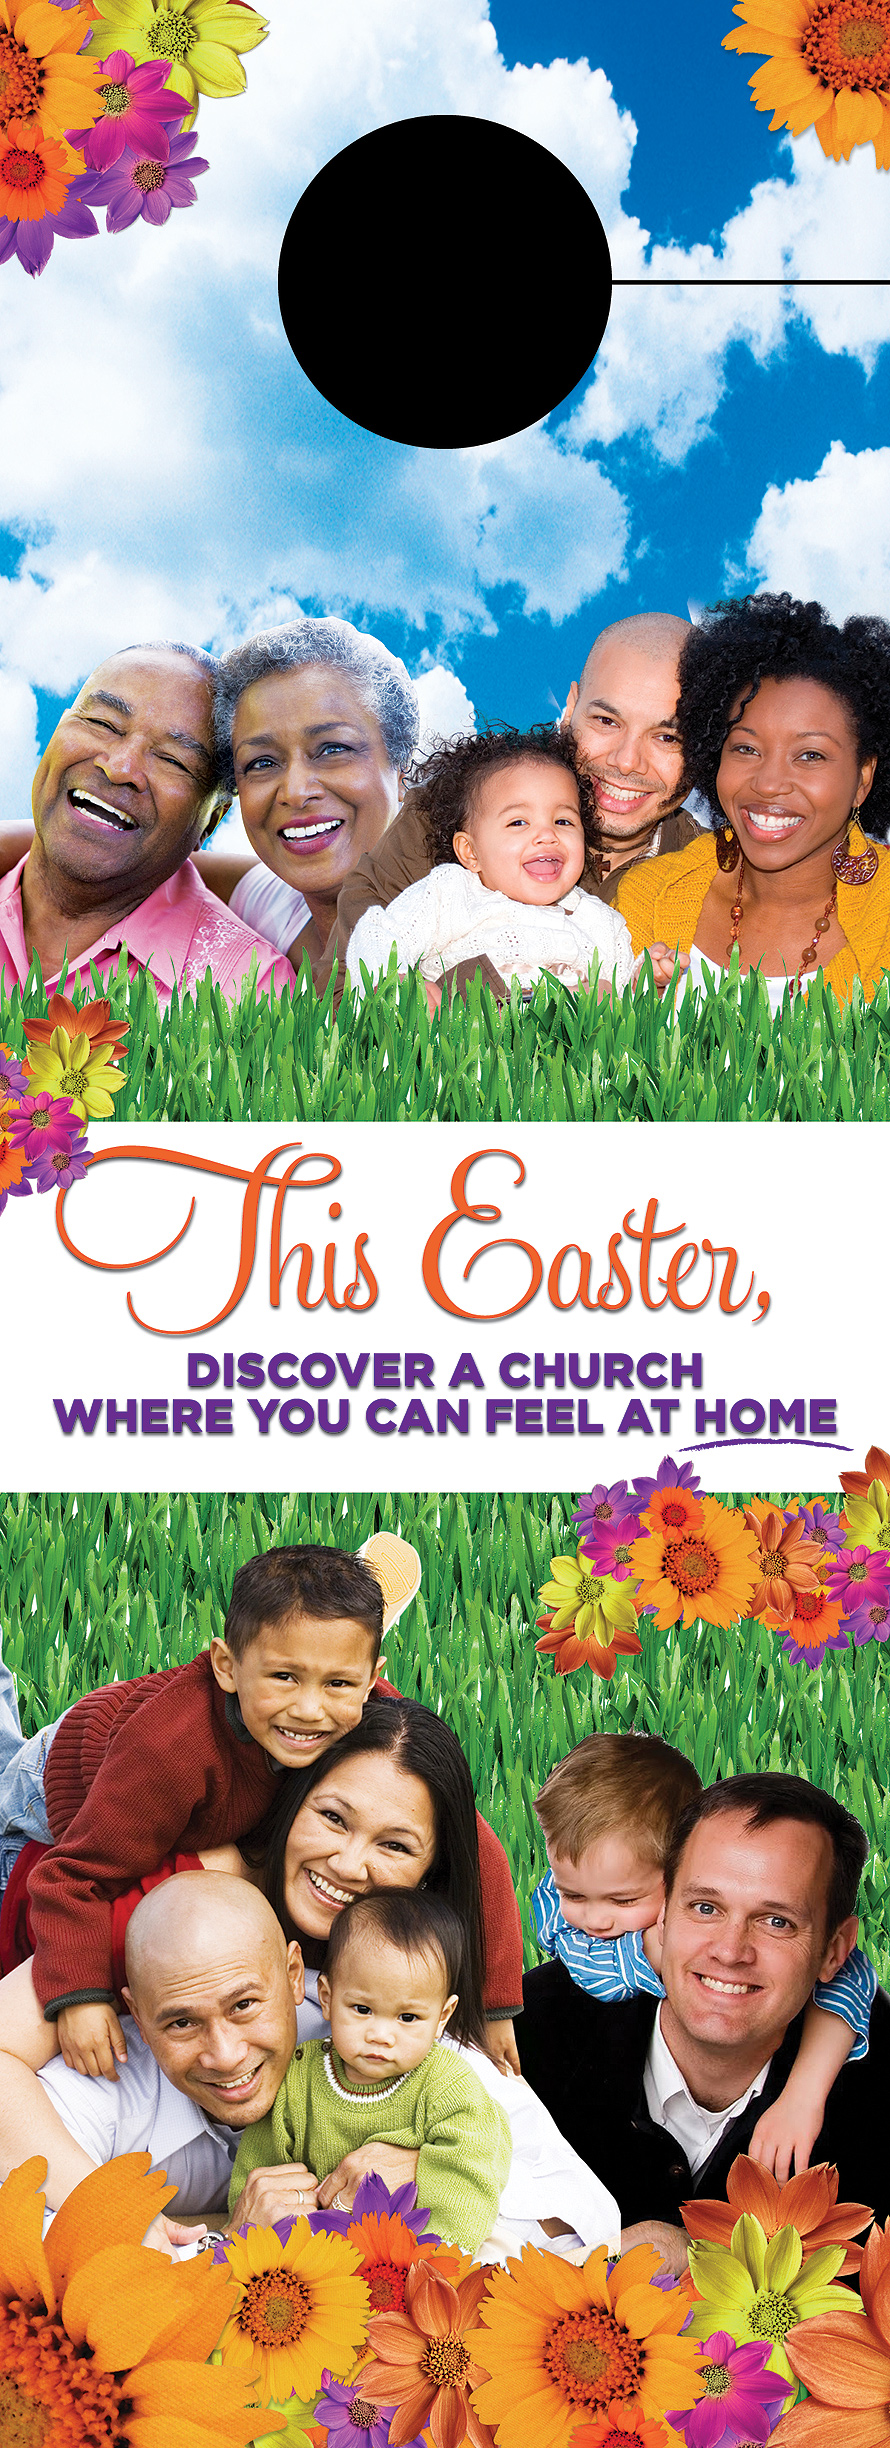 This Easter Discover a Church Where You Can Feel at Home